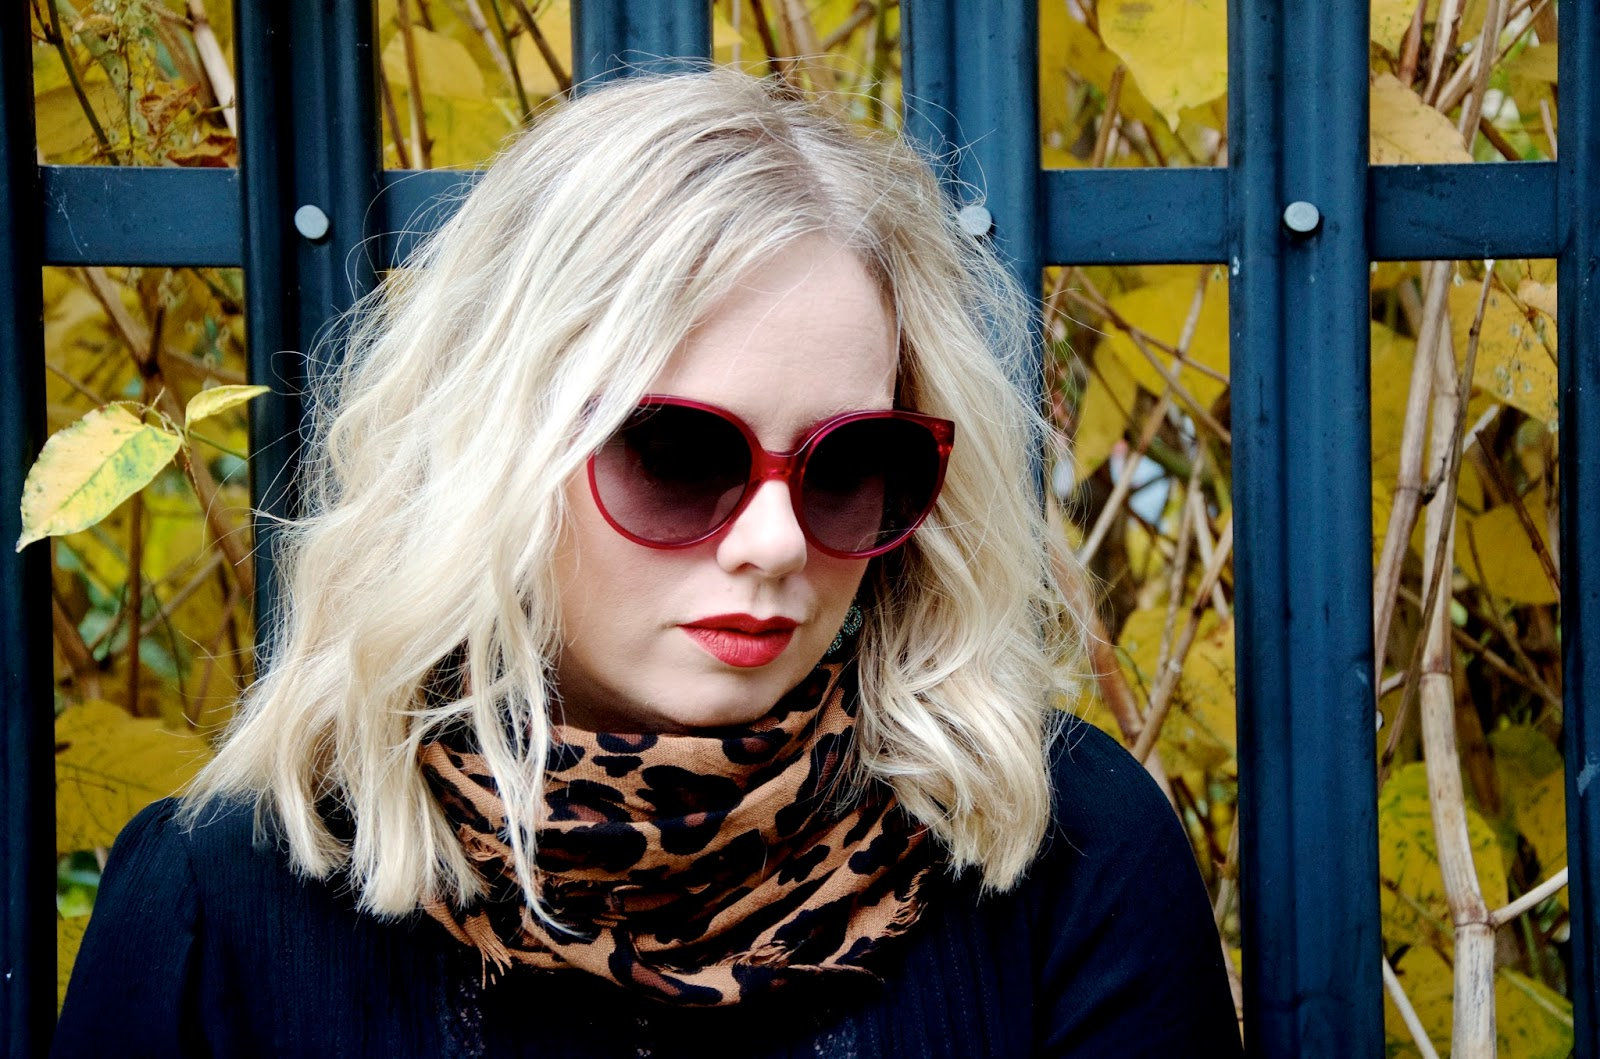 Leopard scarf, Autumn leaves, black blouse, pink sunglasses and red lipstick